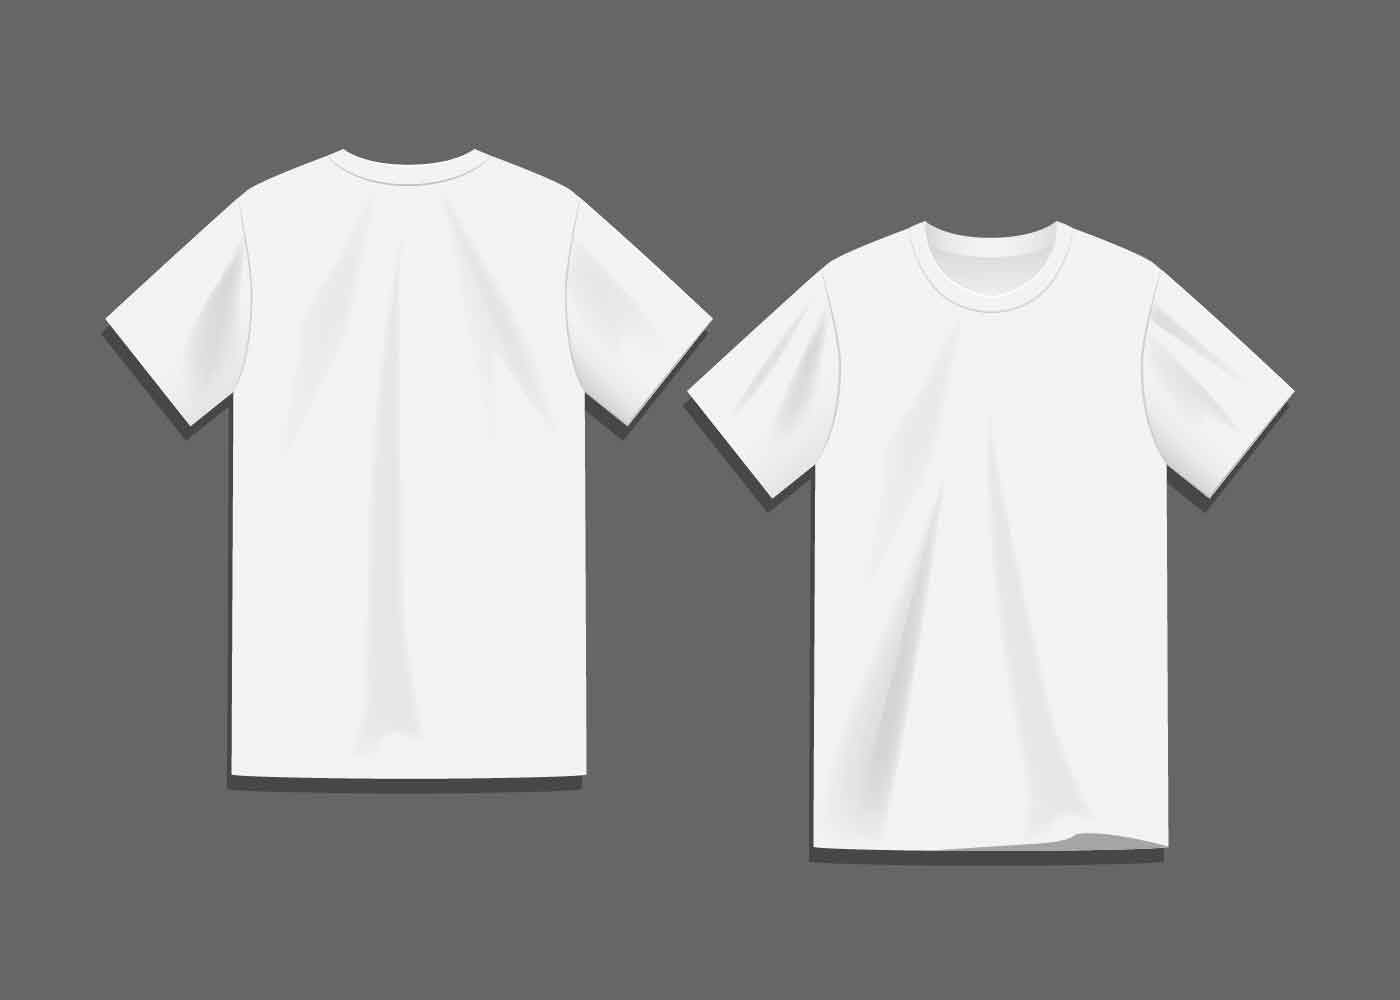 010 Stupendou T Shirt Template Vector High Resolution  Illustrator Design Free Download Ai1400